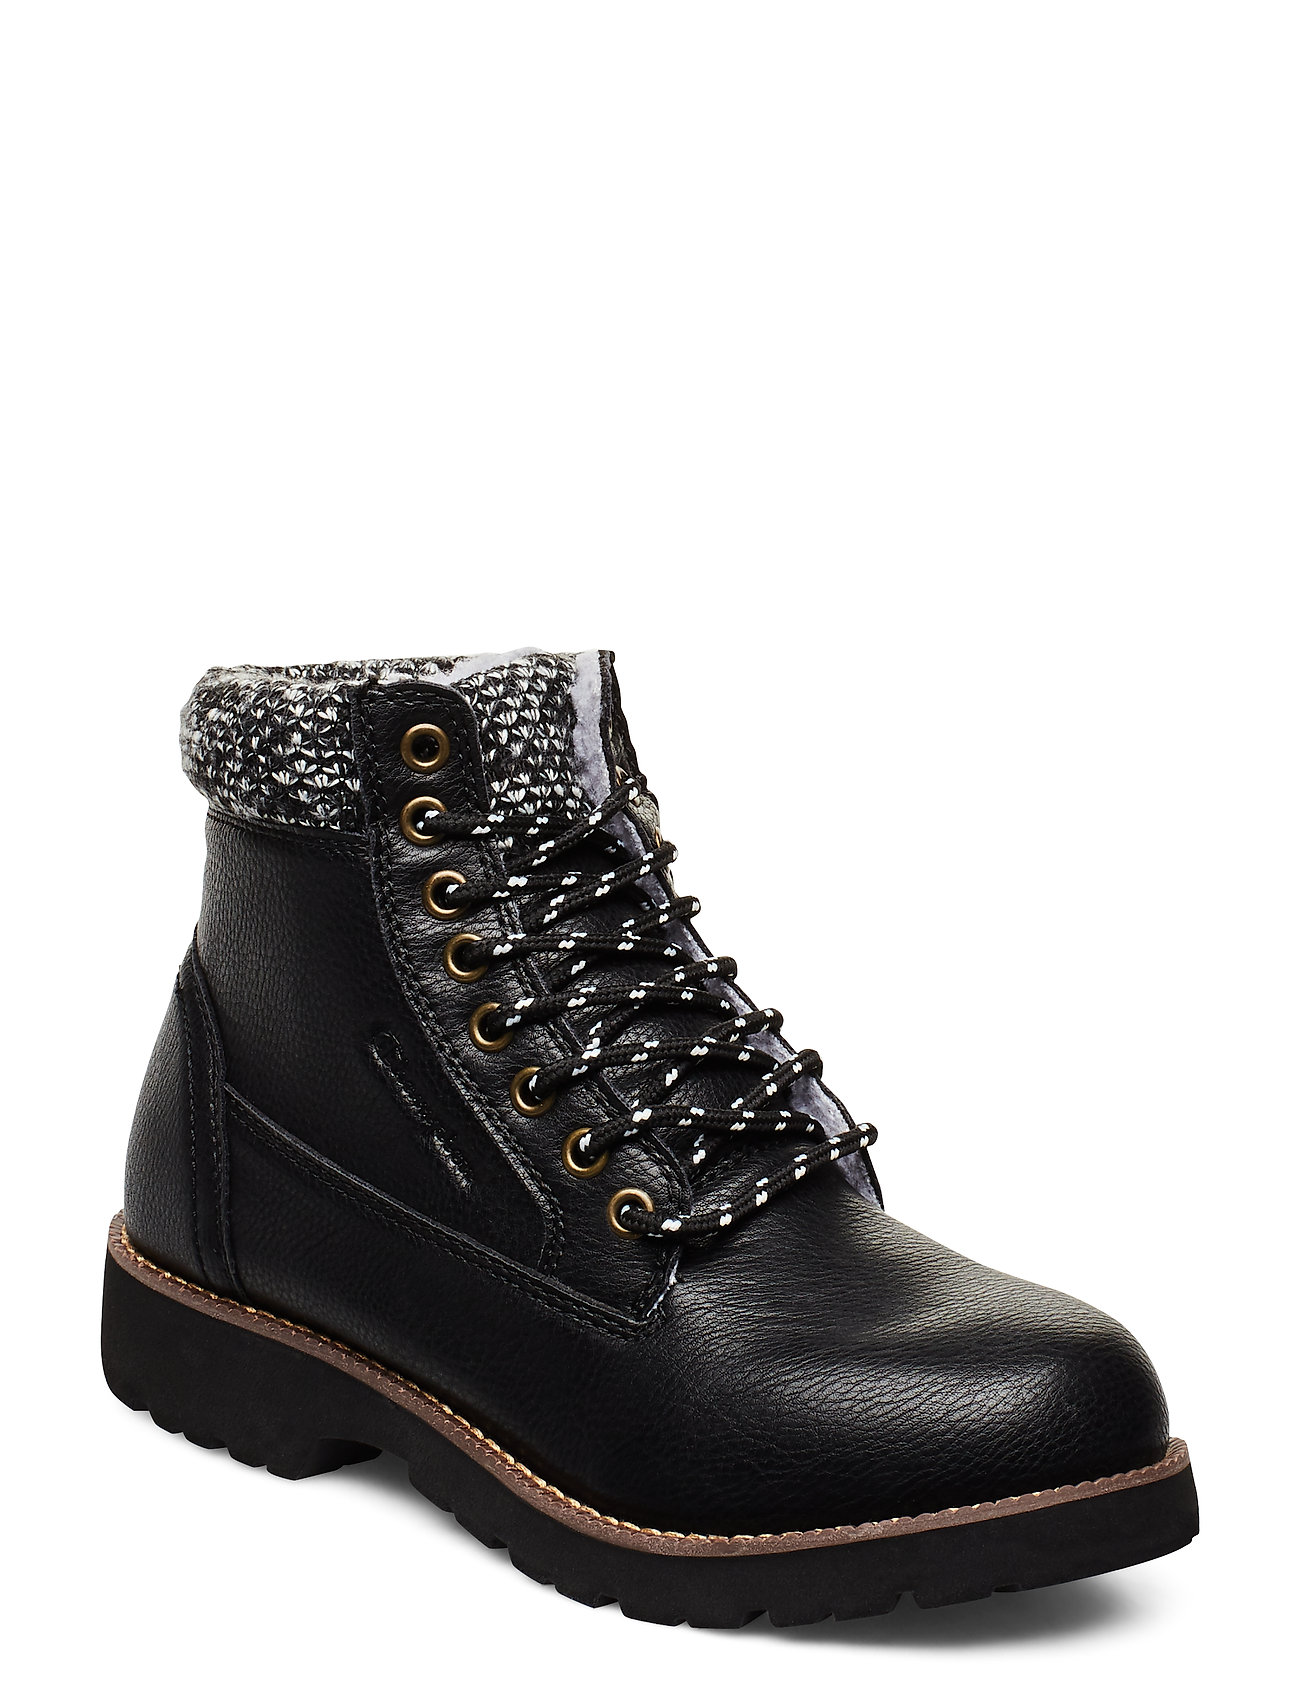 Image of High Cut Shoe Upstate Shoes Boots Ankle Boots Ankle Boots Flat Heel Sort Champion (3374003579)